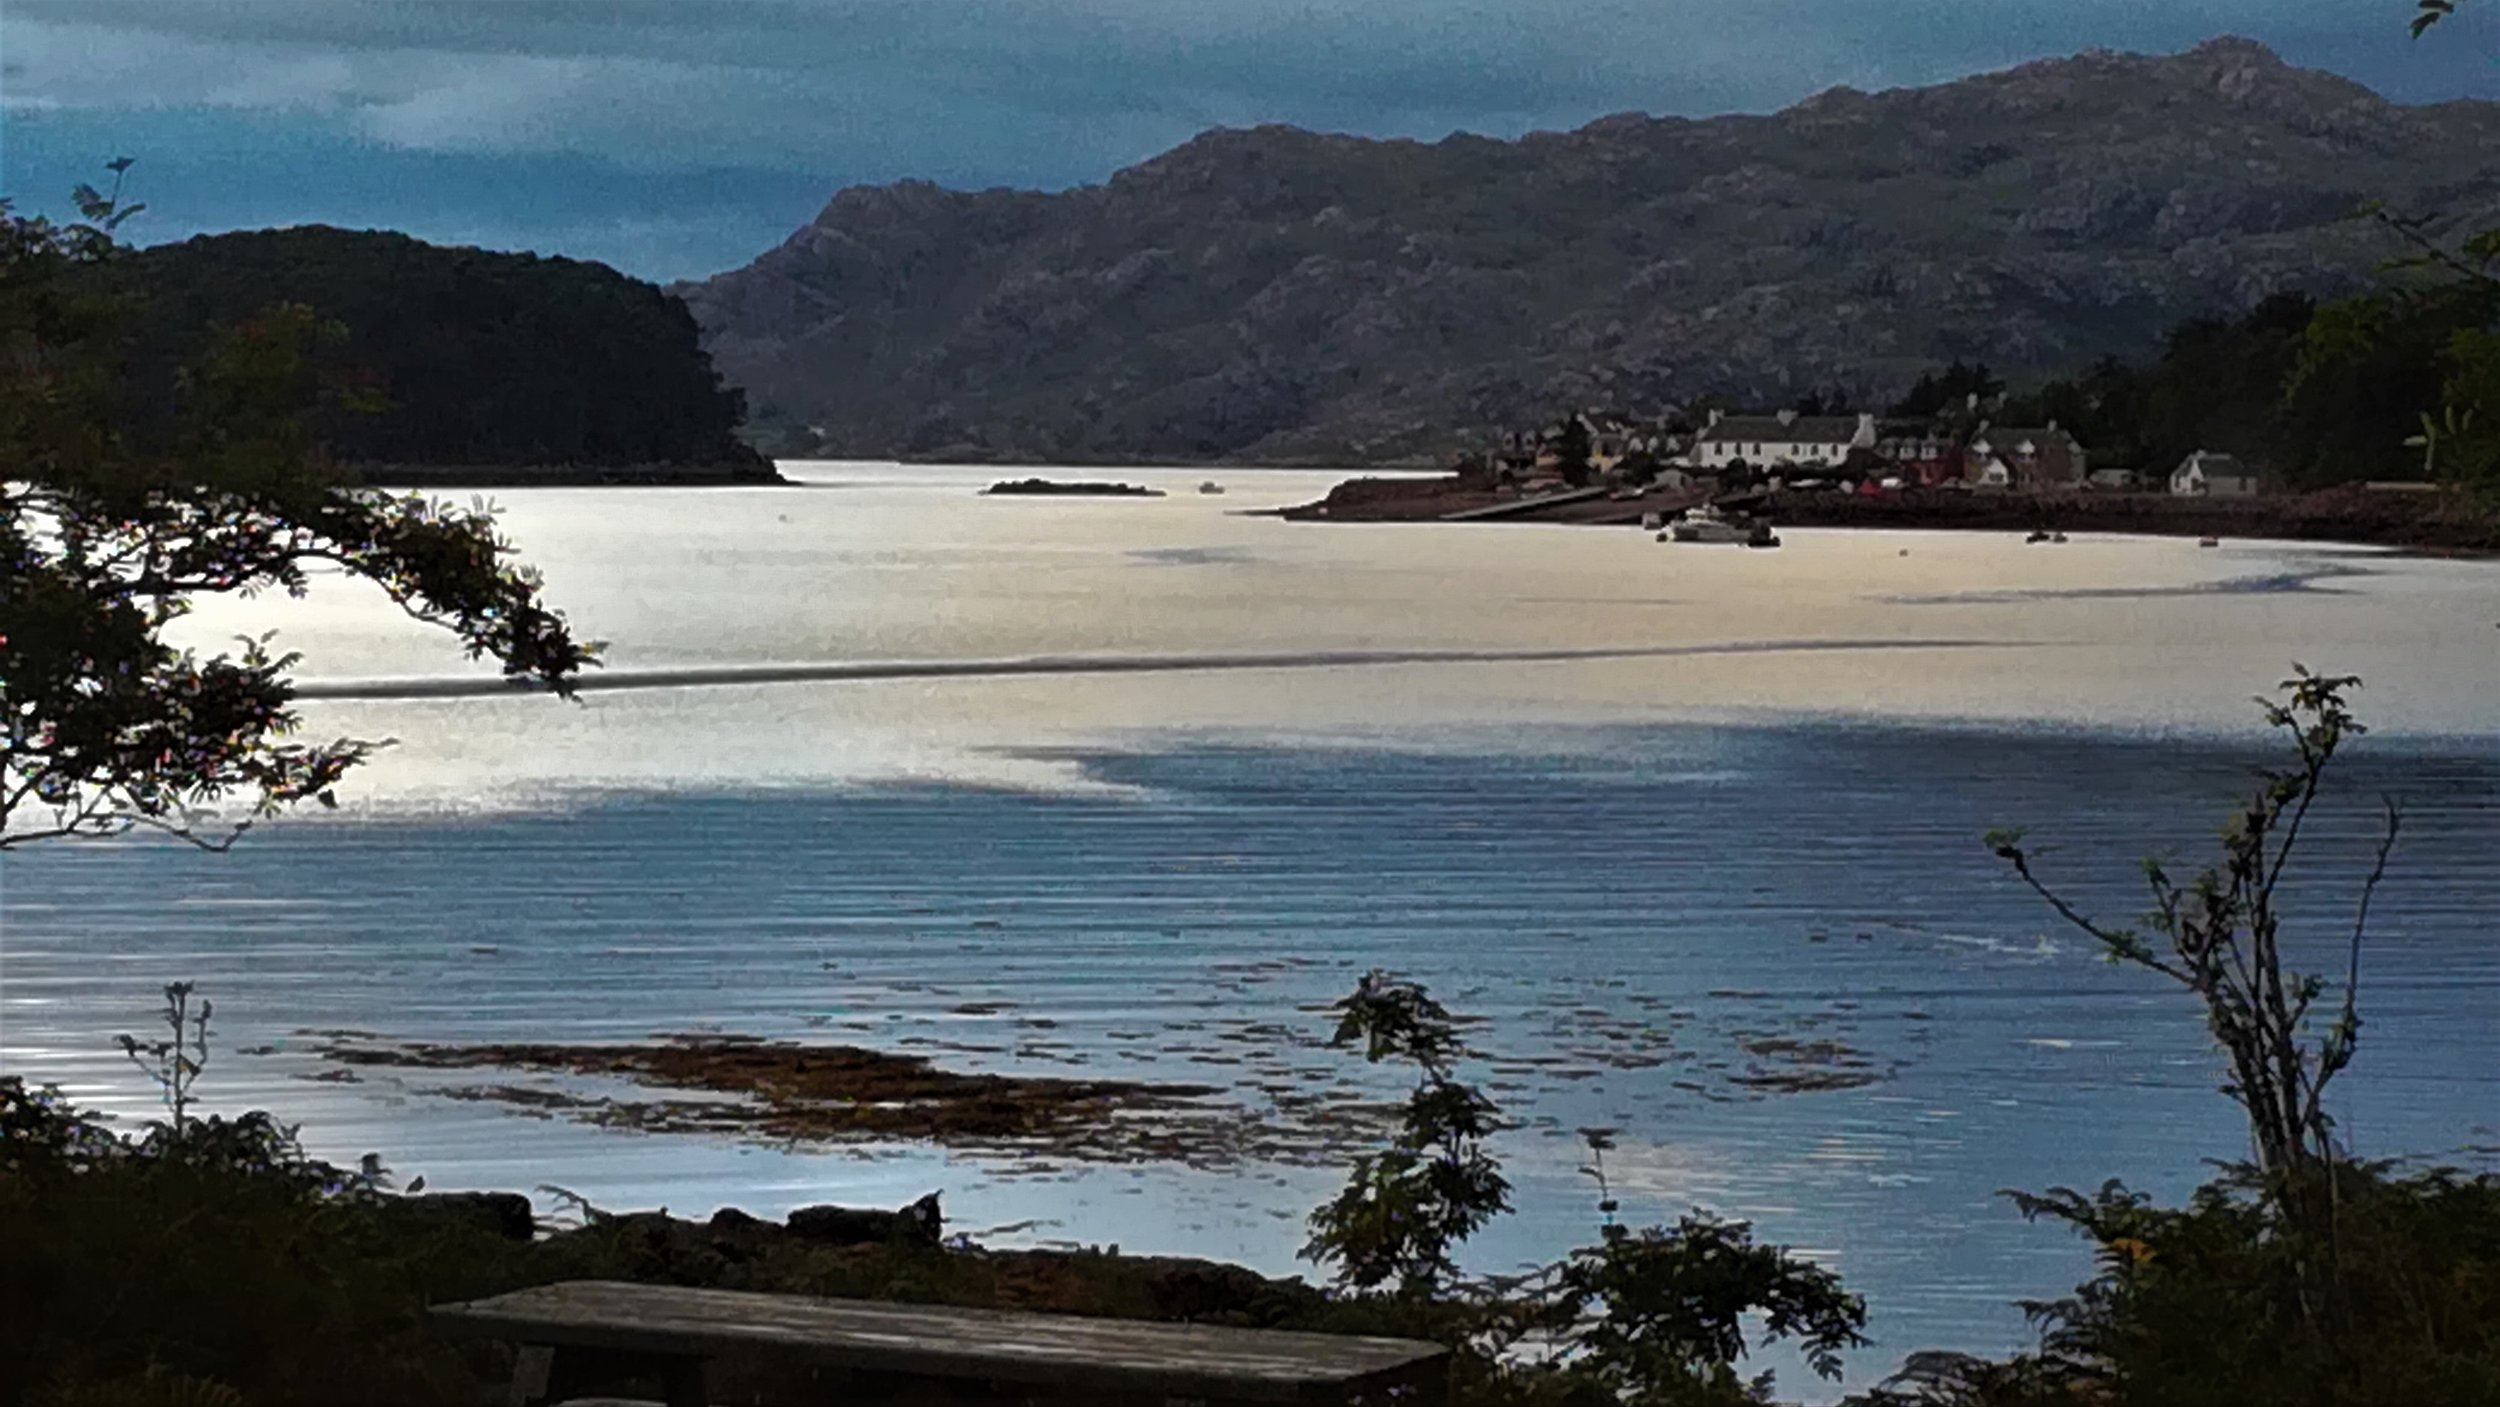 The view from our B&B looking across Loch Torridon to Shieldaig